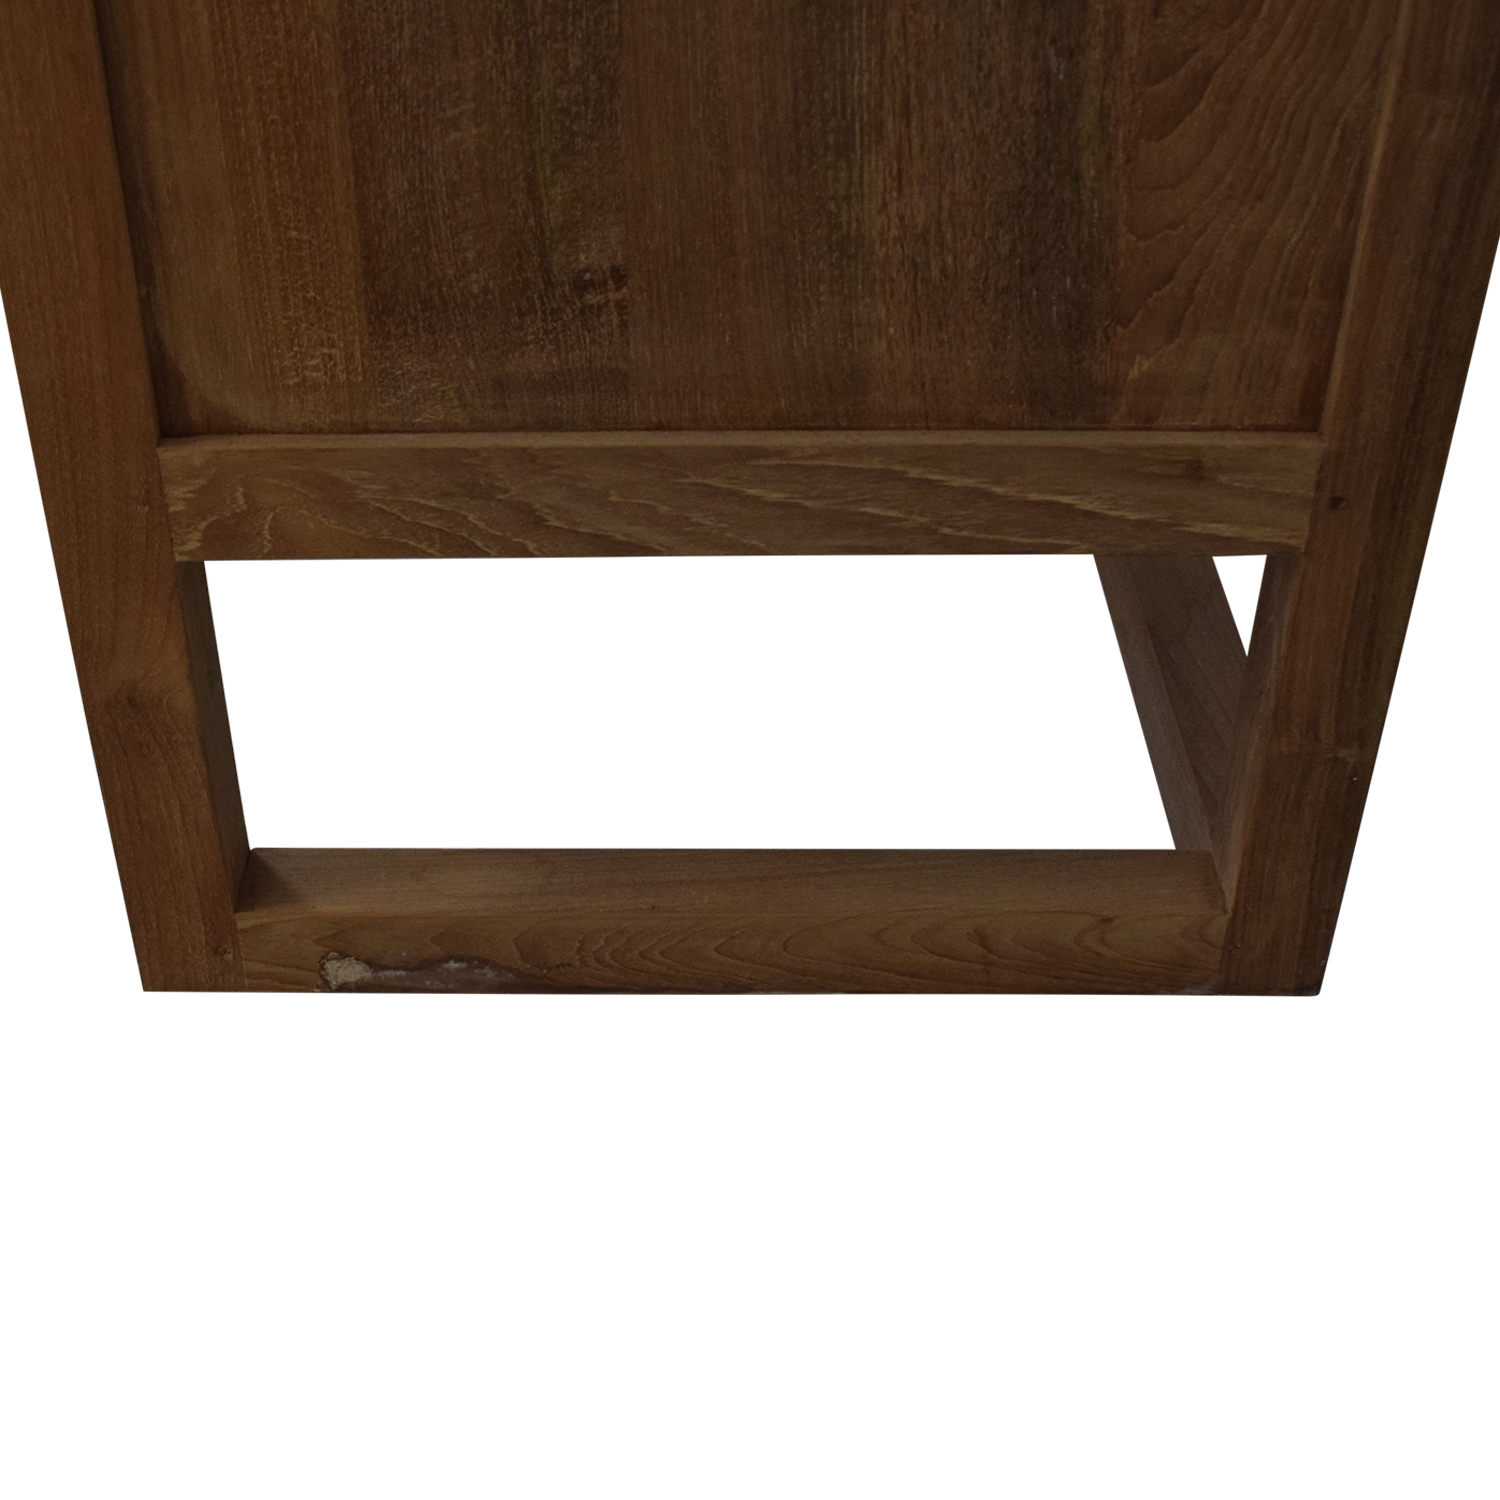 Crate & Barrel Crate & Barrel Linea II Natural Three-Drawer Chest used